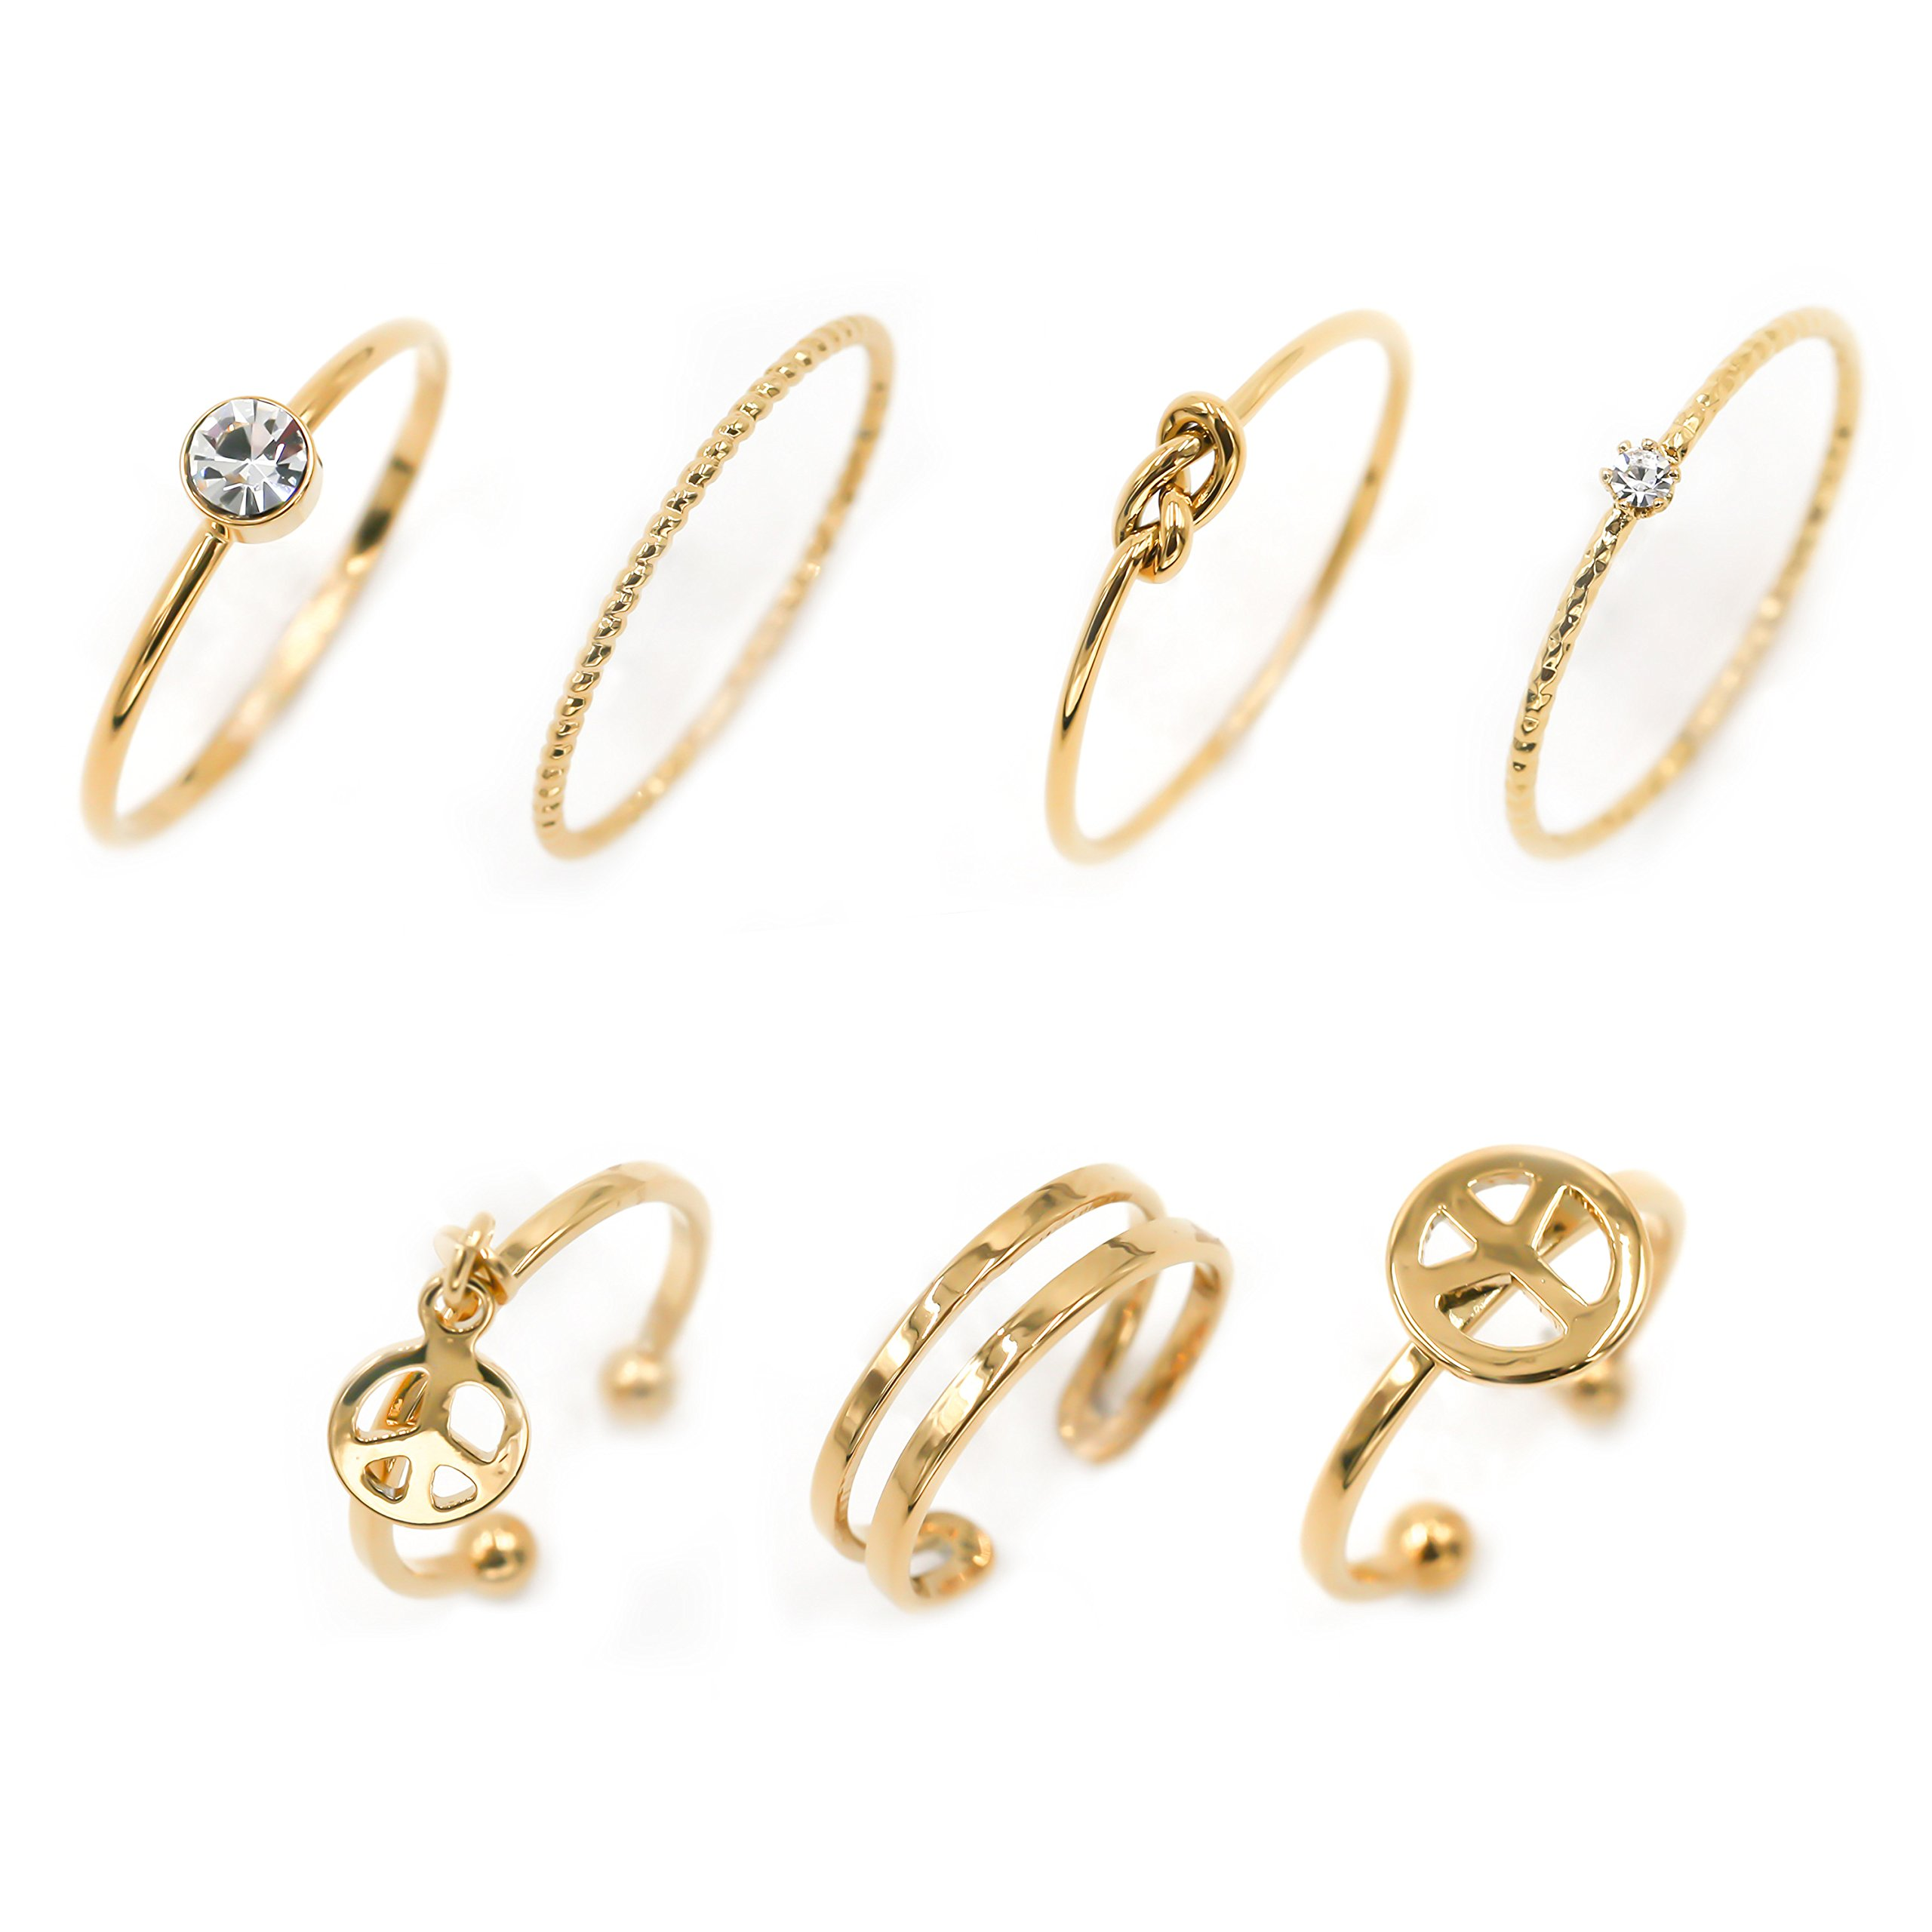 Fashion Jewelry Rings Set of 7 pcs Stackable Peace Symbol Midi Kunckle Anti-tarnished Real Gold Plated Filigree Cute Dainty Rings Pack for Woman Ladies Girls (Gold)